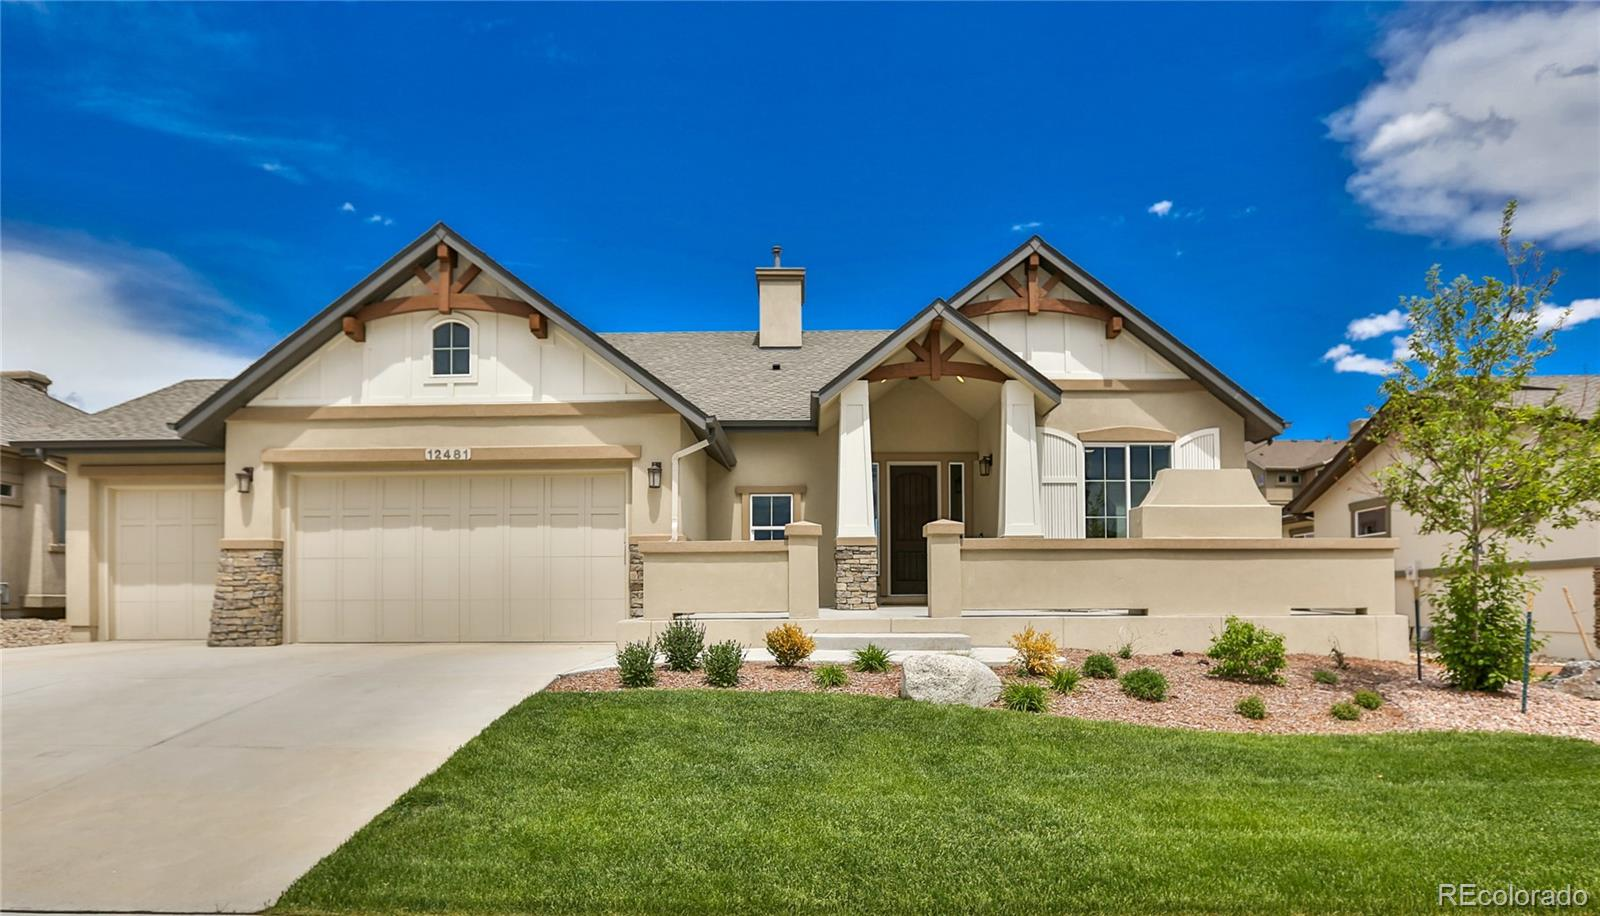 12481 Cloudy Bay Drive Property Photo - Colorado Springs, CO real estate listing